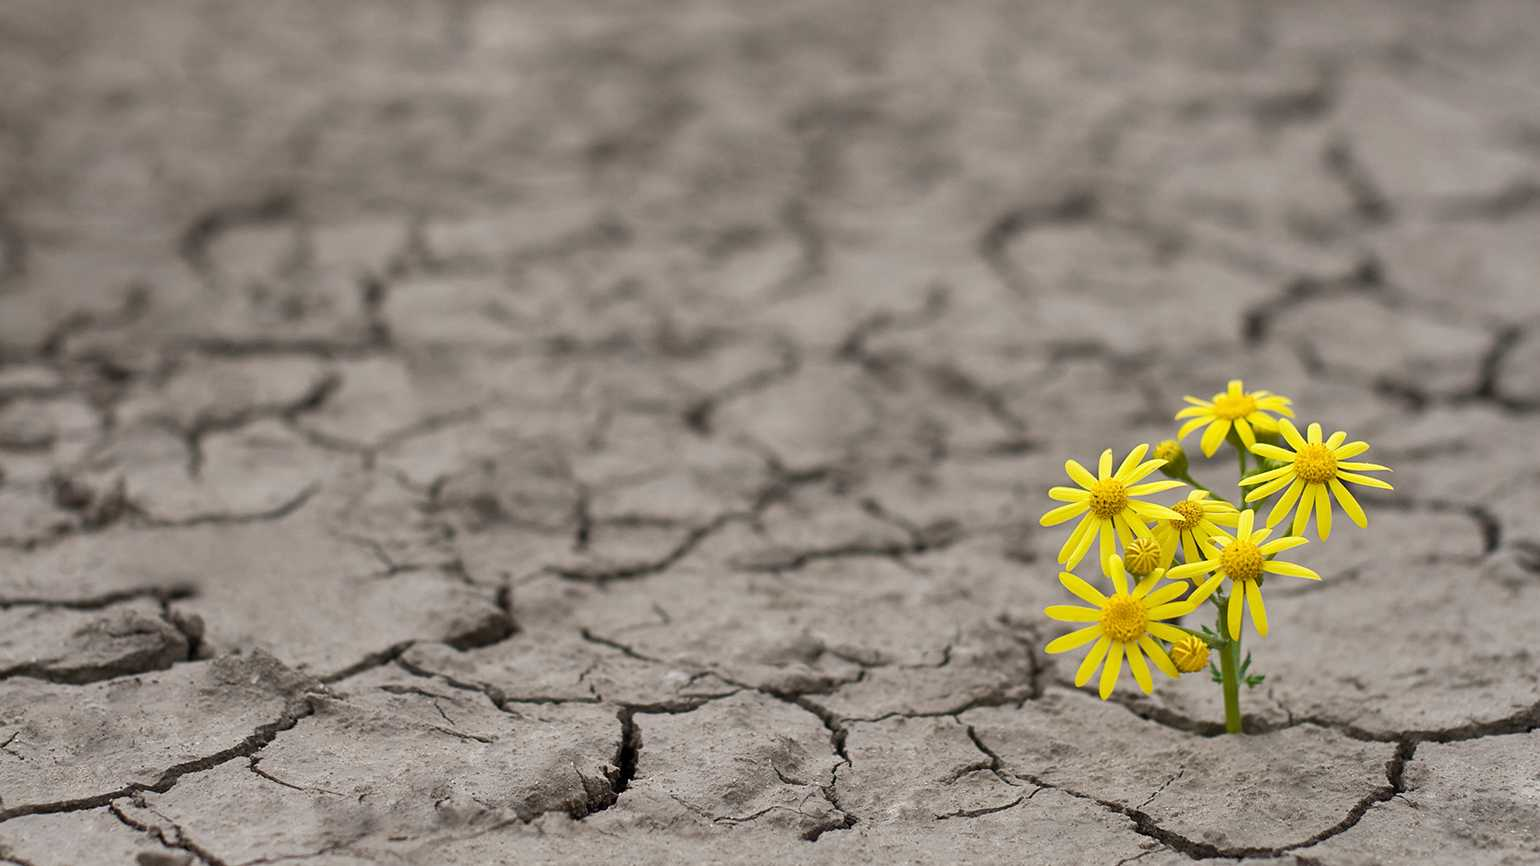 Yellow flowers blossom from dry, cracked earth